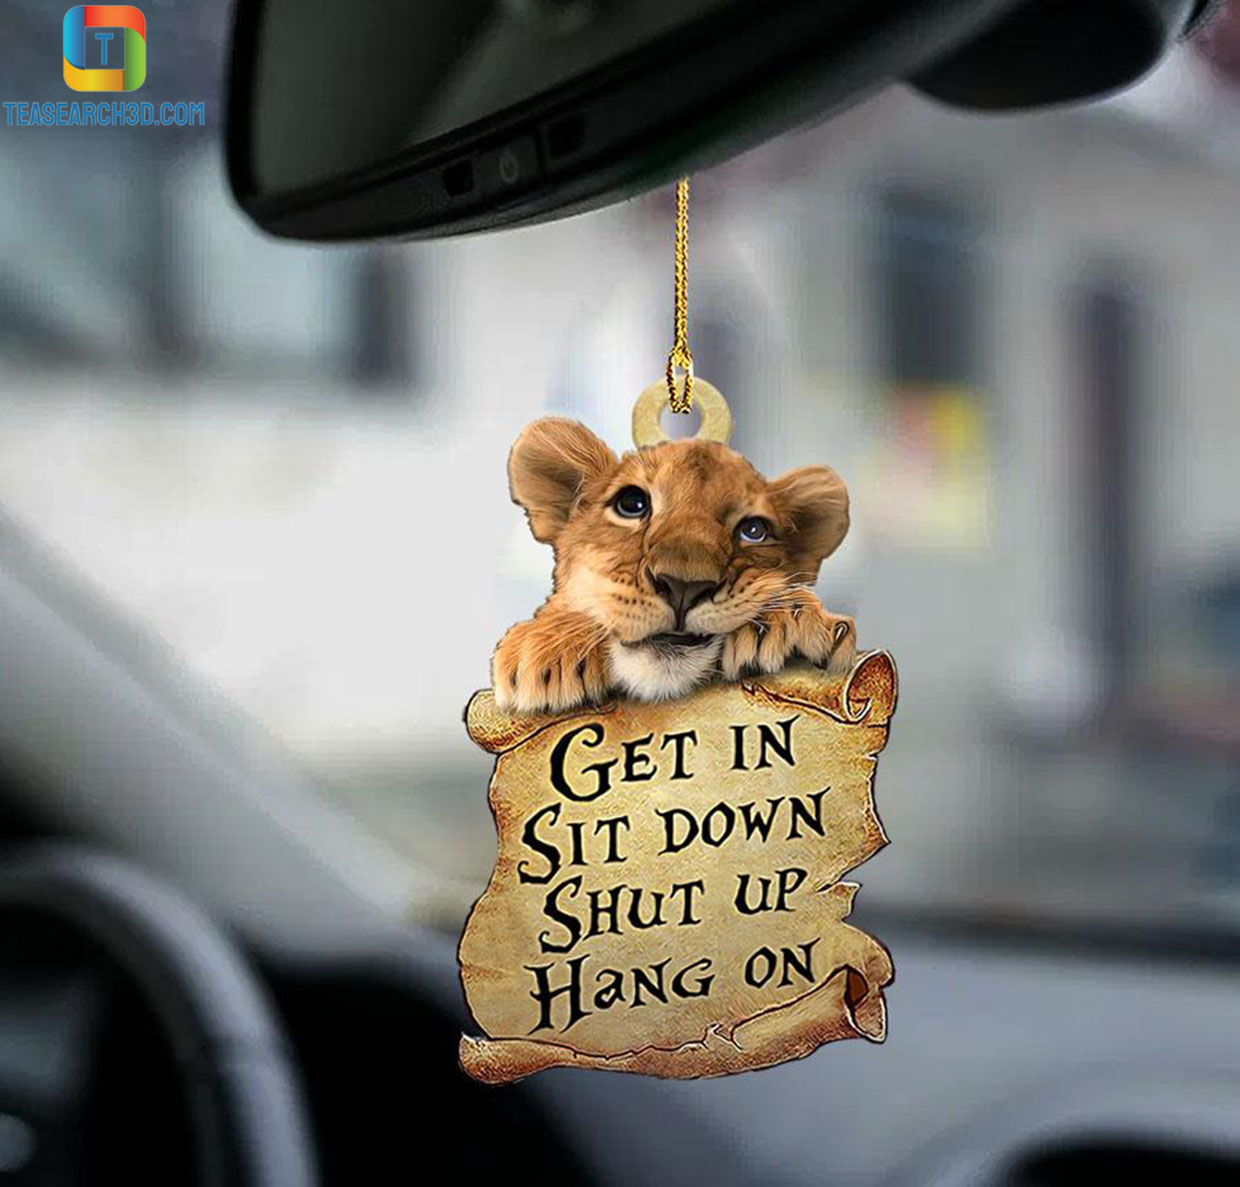 Lion get in sit down shut up hang on car hanging ornament